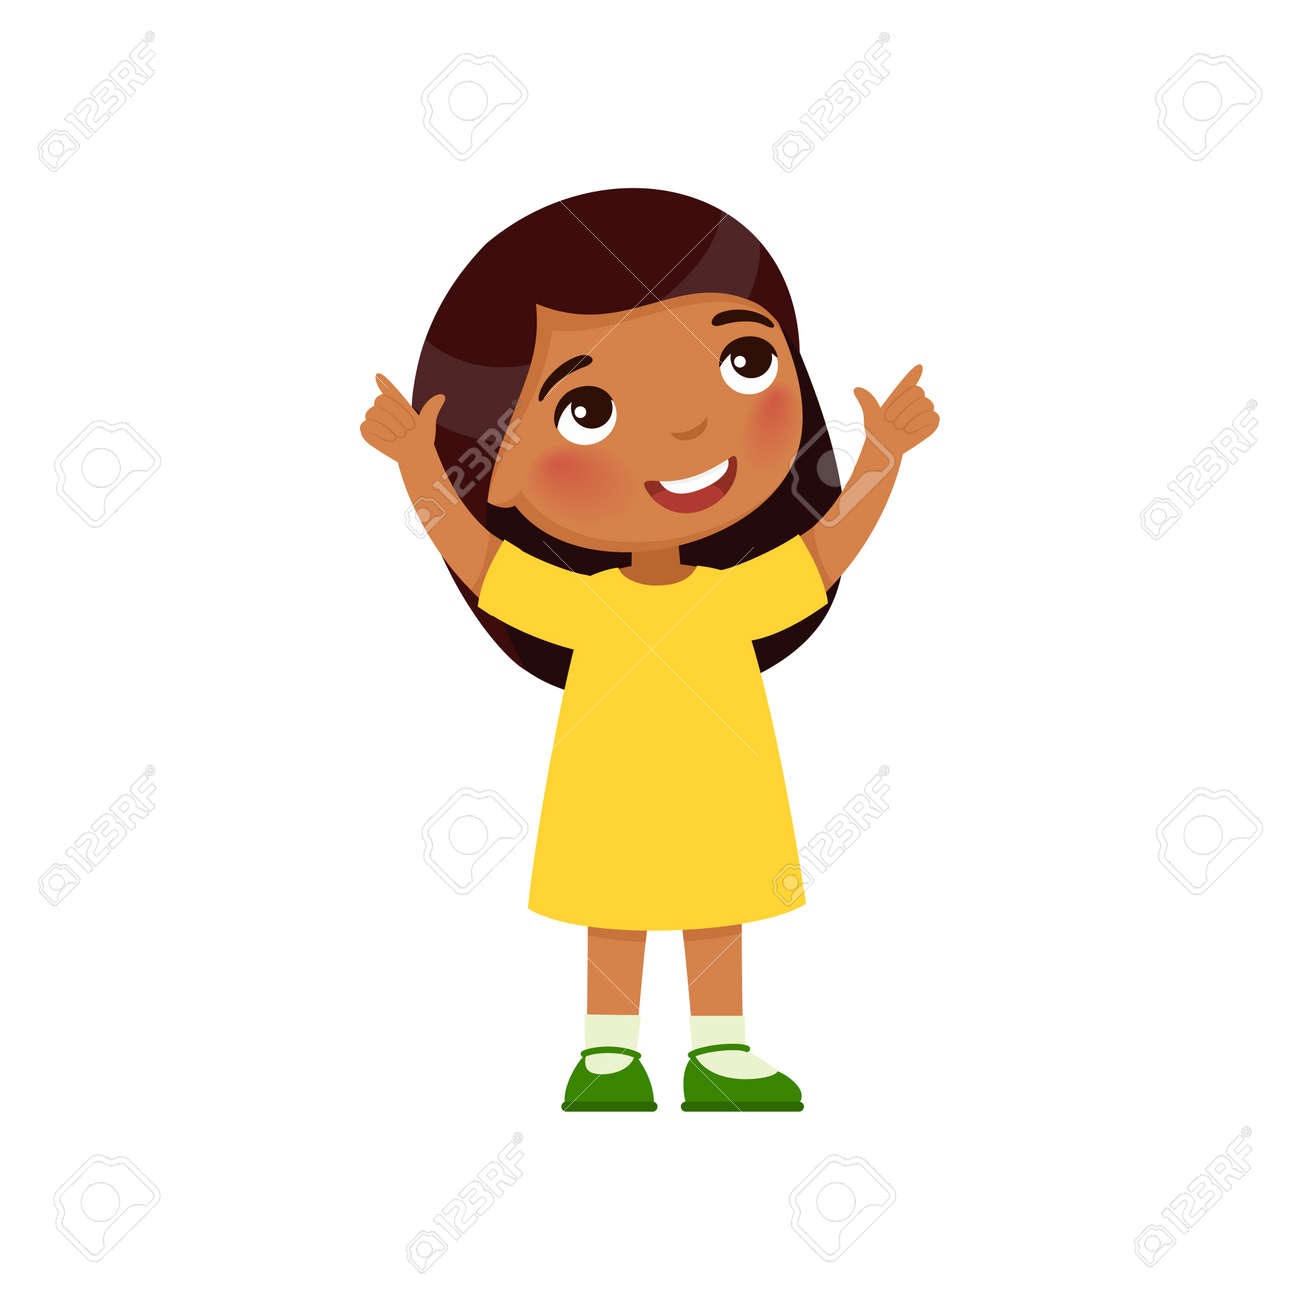 Little Indian girl looks up and shows her fingers up. Dark skin cartoon character isolated on white background. Flat vector color illustration. - 170931959